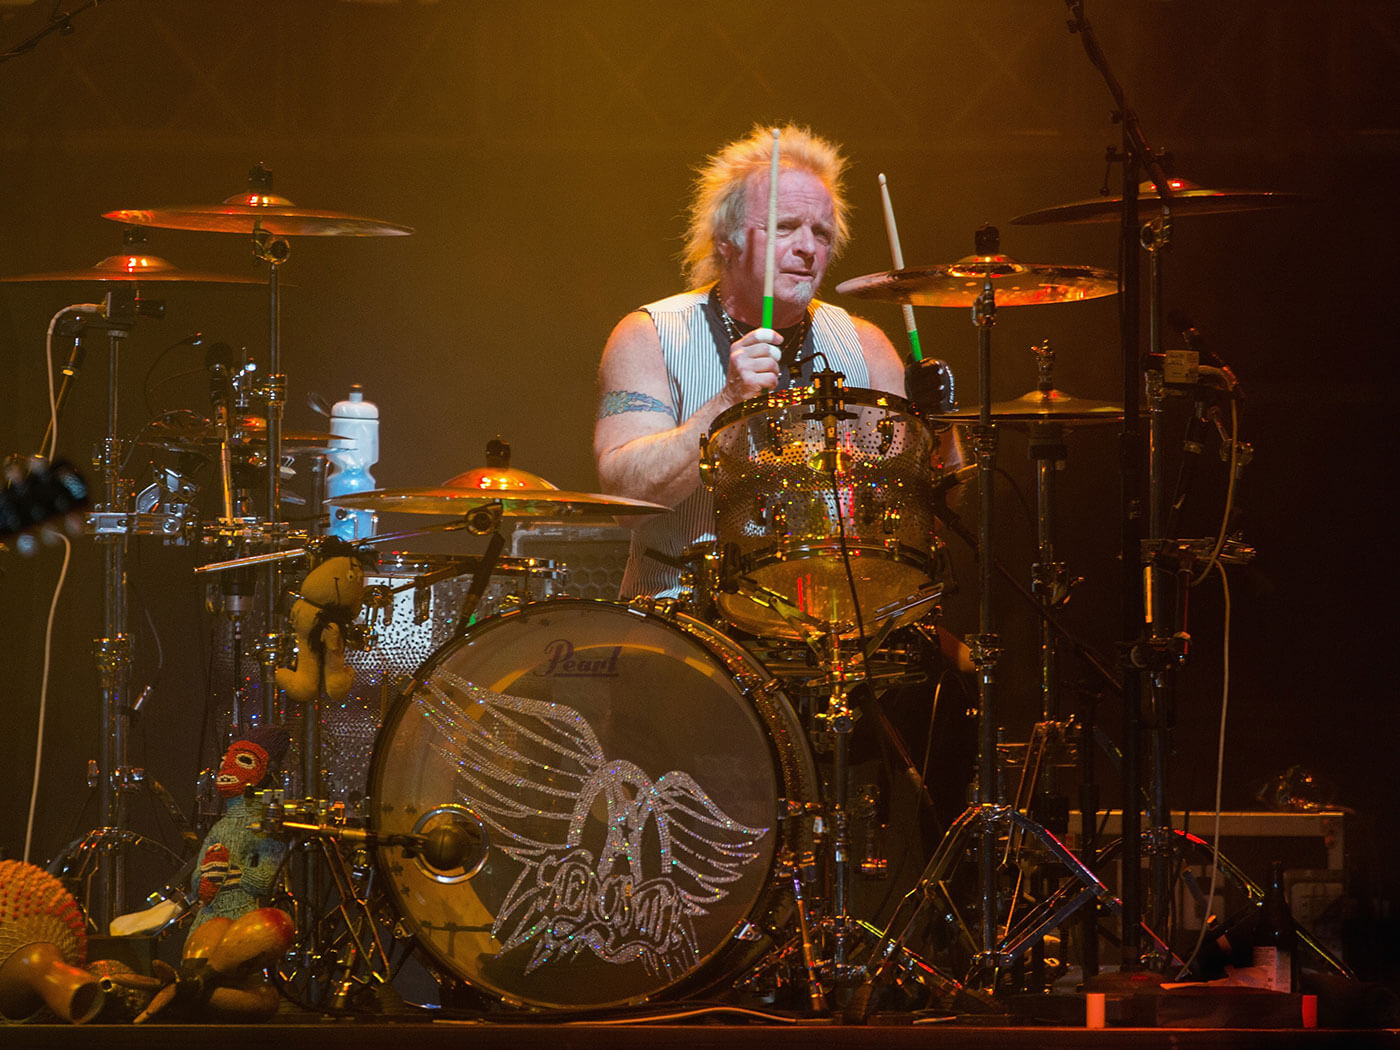 Joey Kramer is back in Aerosmith